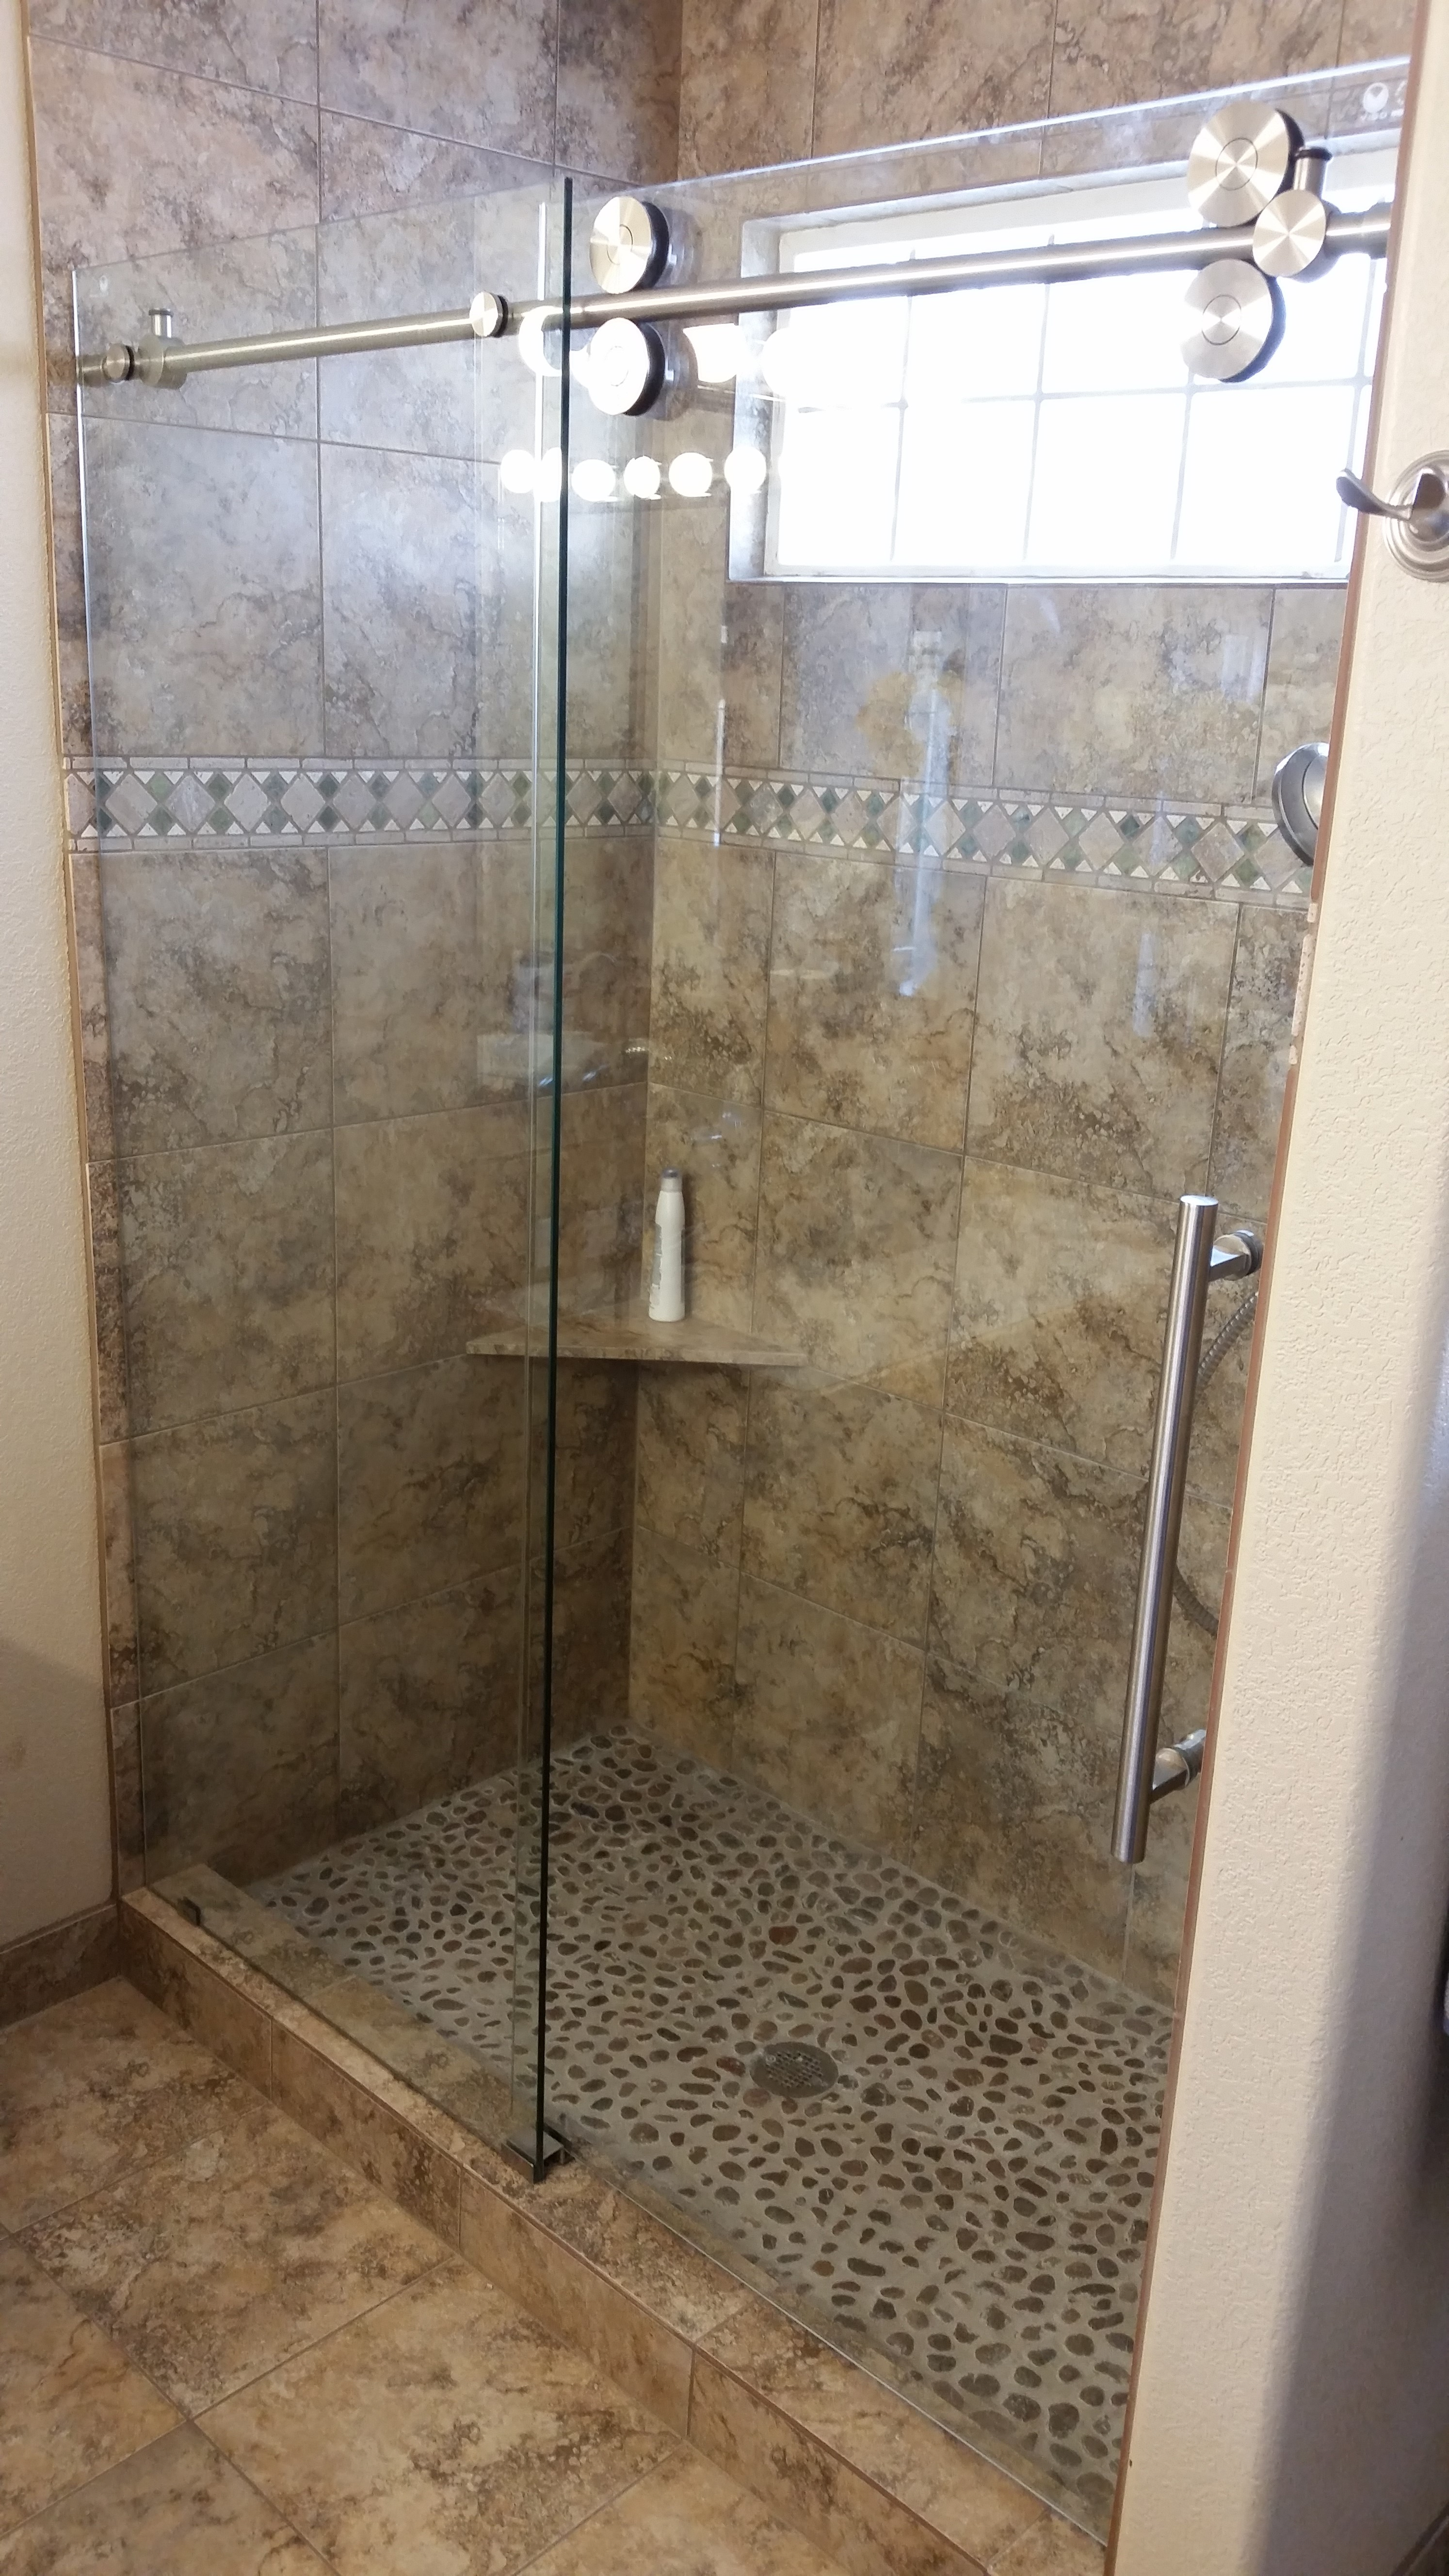 bathroom door r lovely decor shower ideas complete stylish remodel of home about glass austin example inspirationswith doors